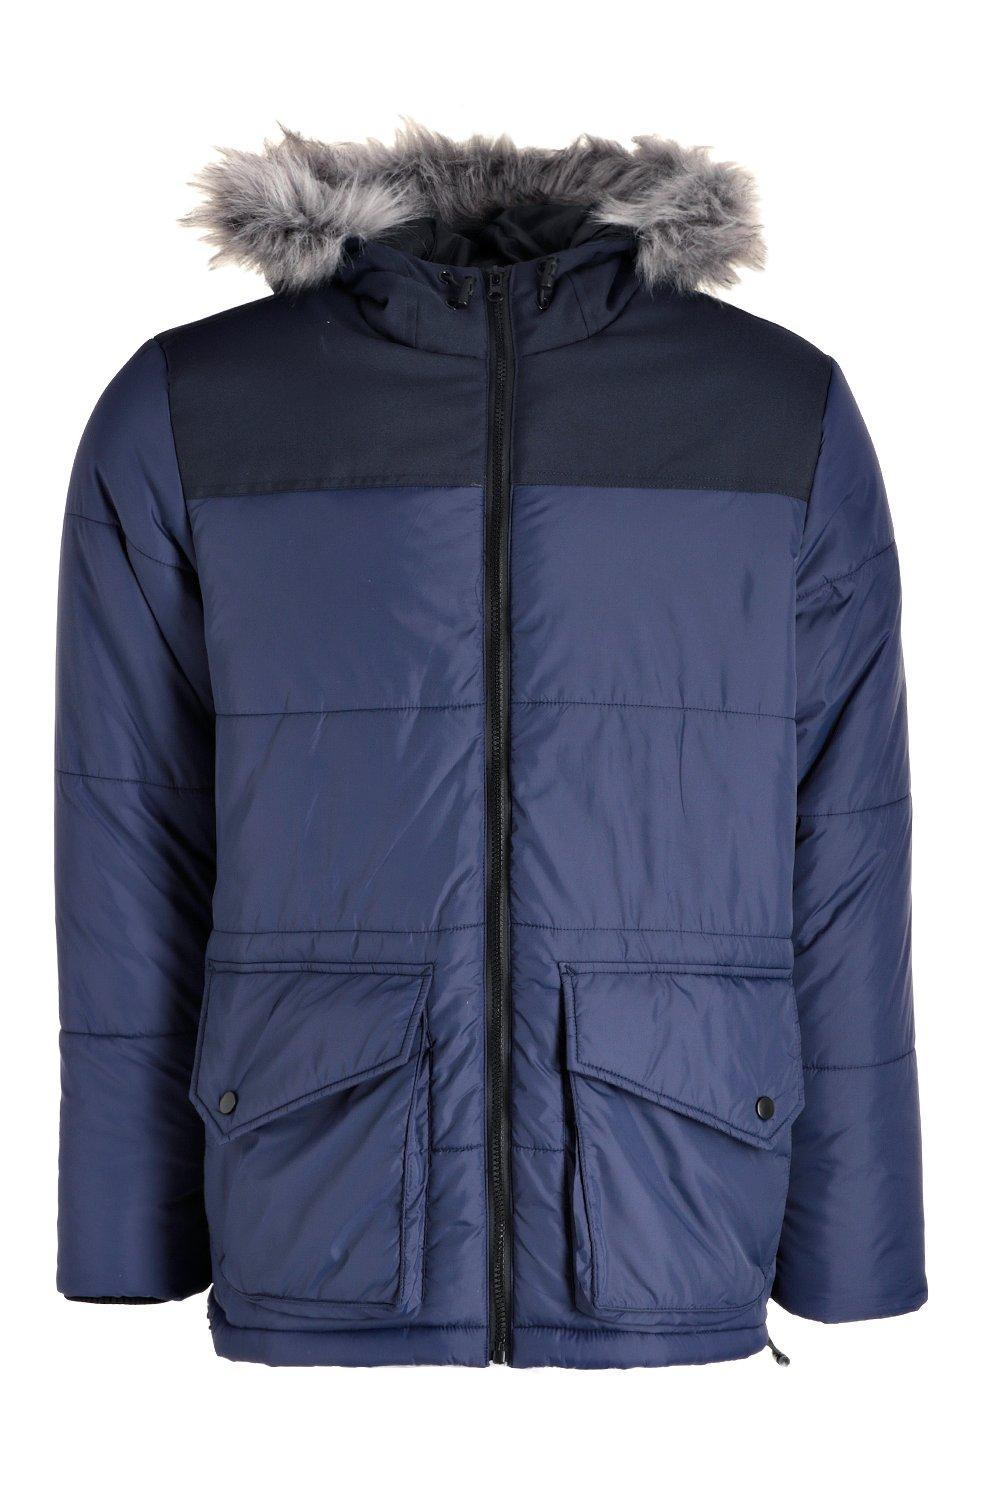 boohooMAN navy Zip Through Hooded Padded Parka